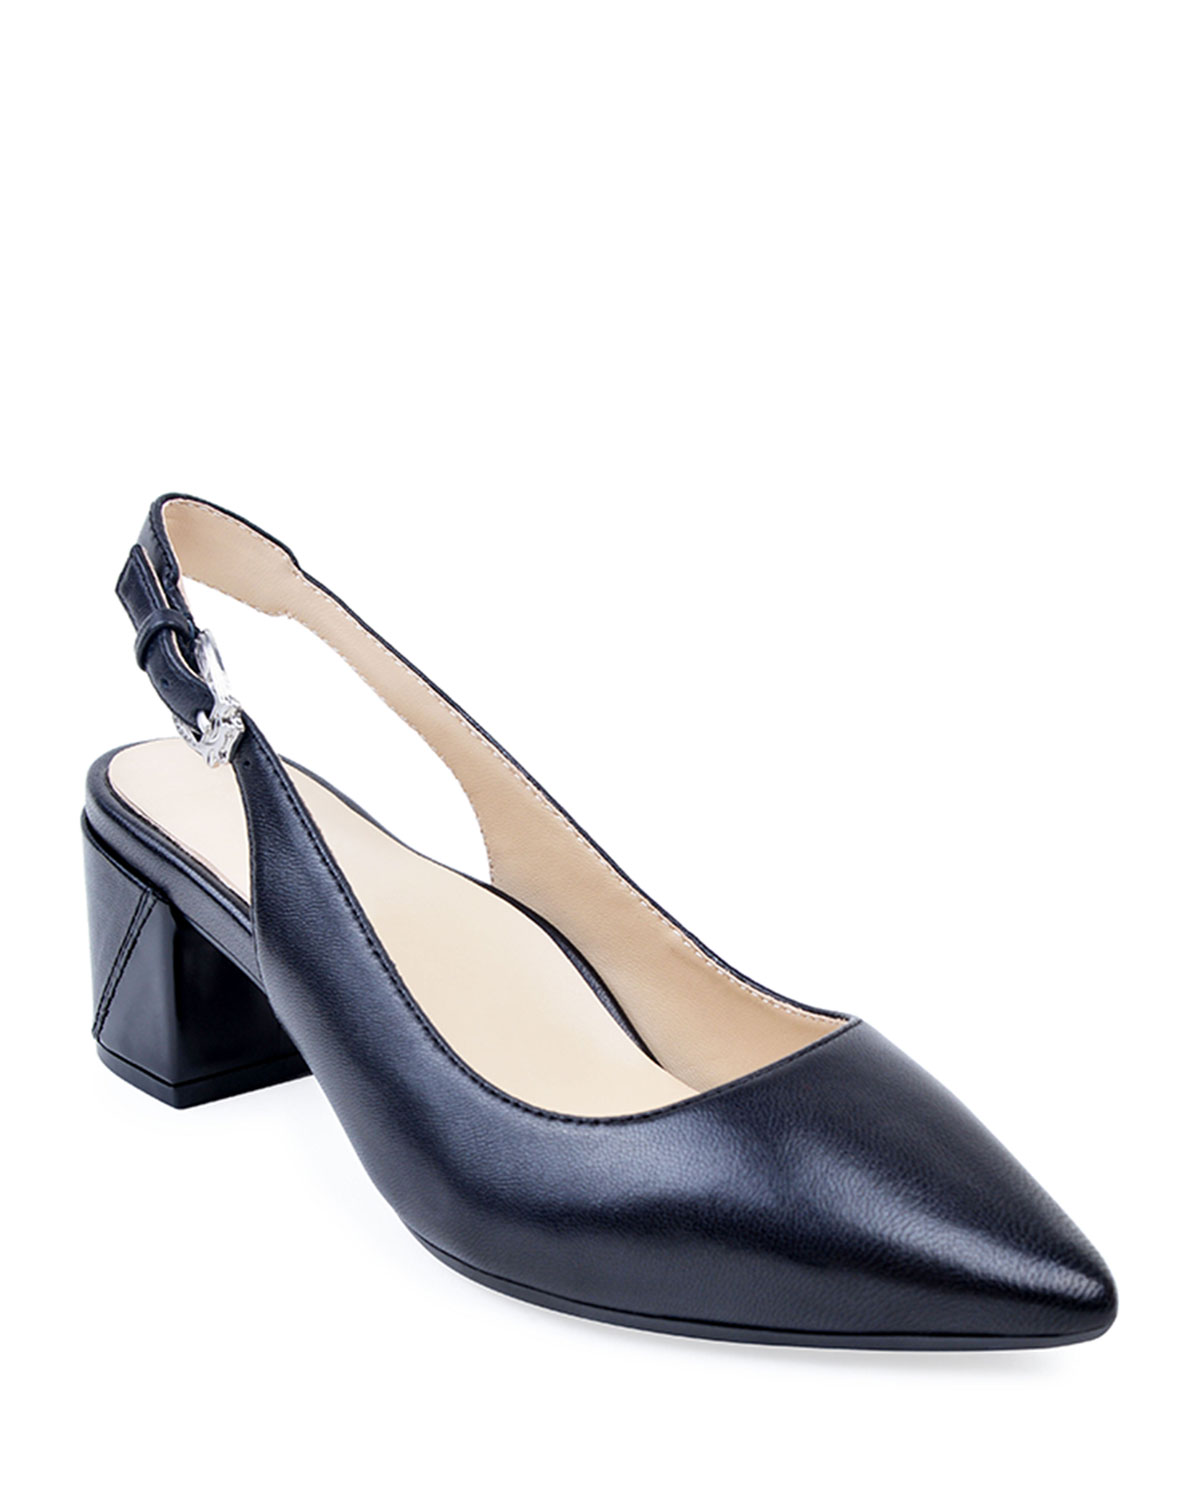 Flynn Leather Slingback Pumps, Black